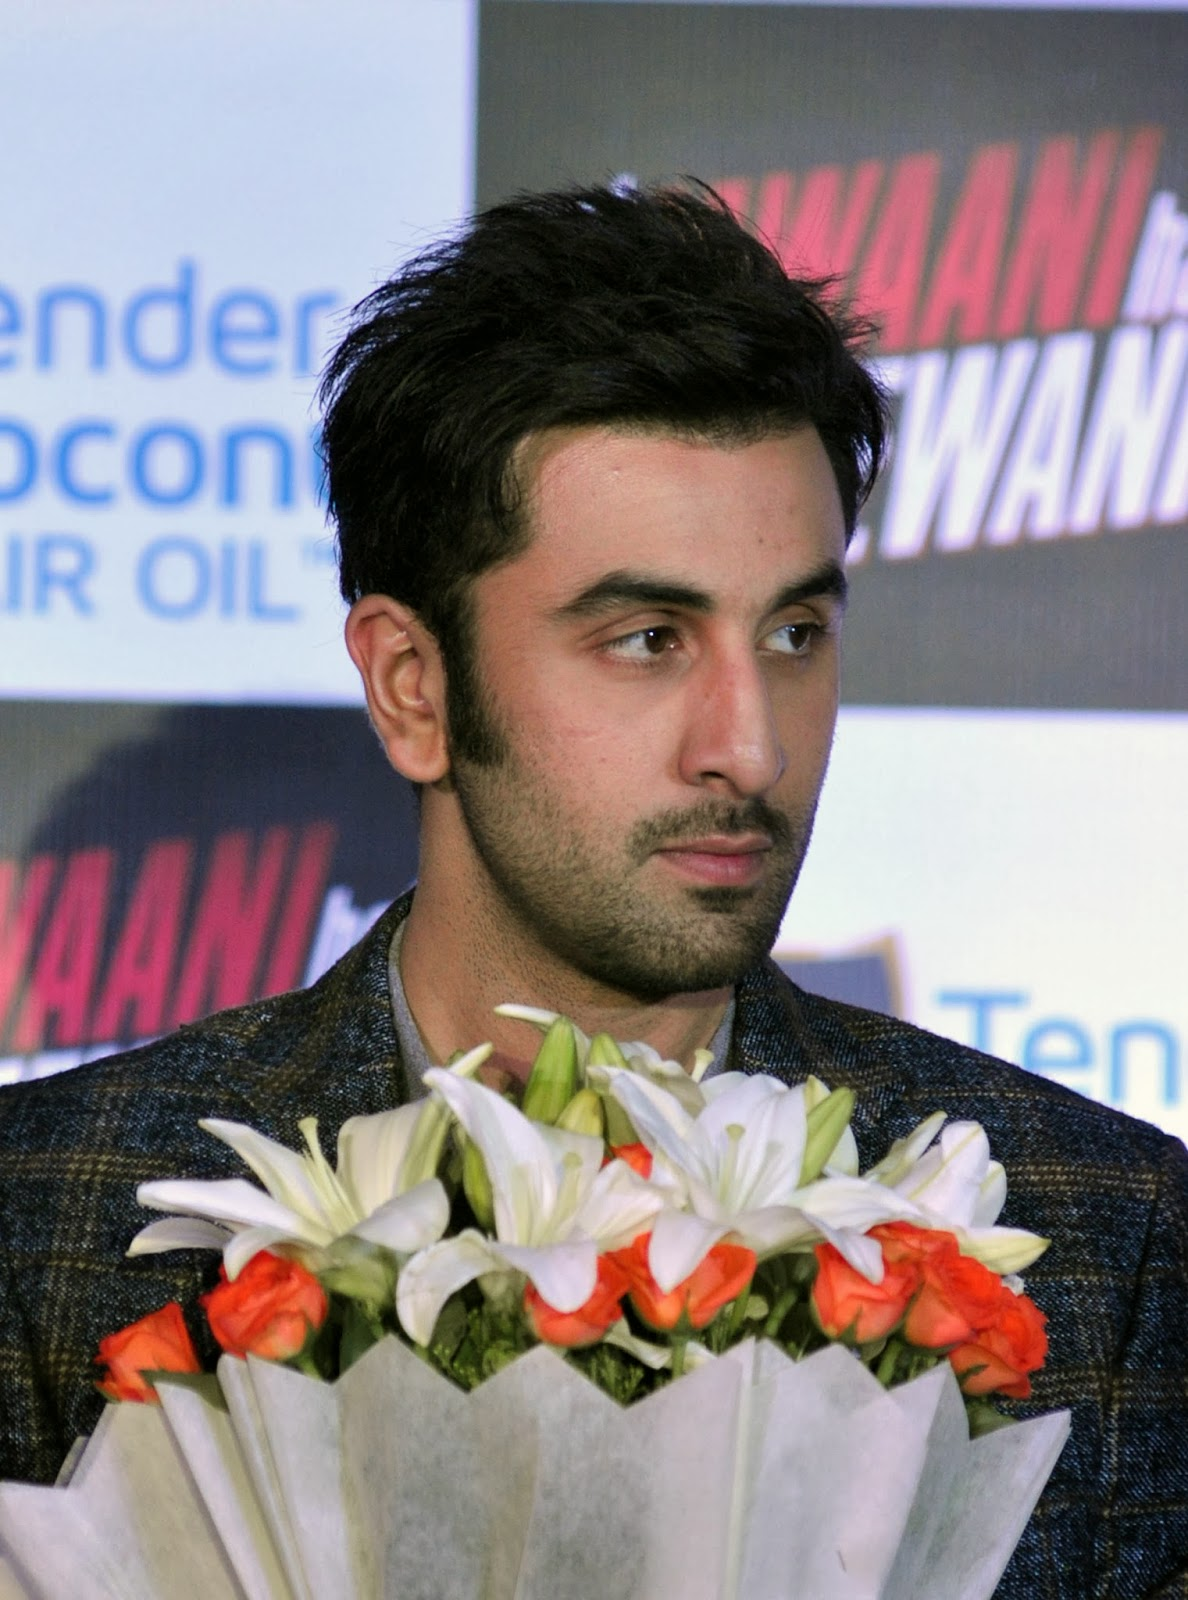 Actor, Actress, Bollywood, Bollywood scandal, Breakup, Entertainment, Katrina Kaif, Love Affair, Marriage Proposal, News, Ranbir Kapoor, Ranbir Kapoor and Katrina Kaif-Scandal, Scandal, Showbiz,